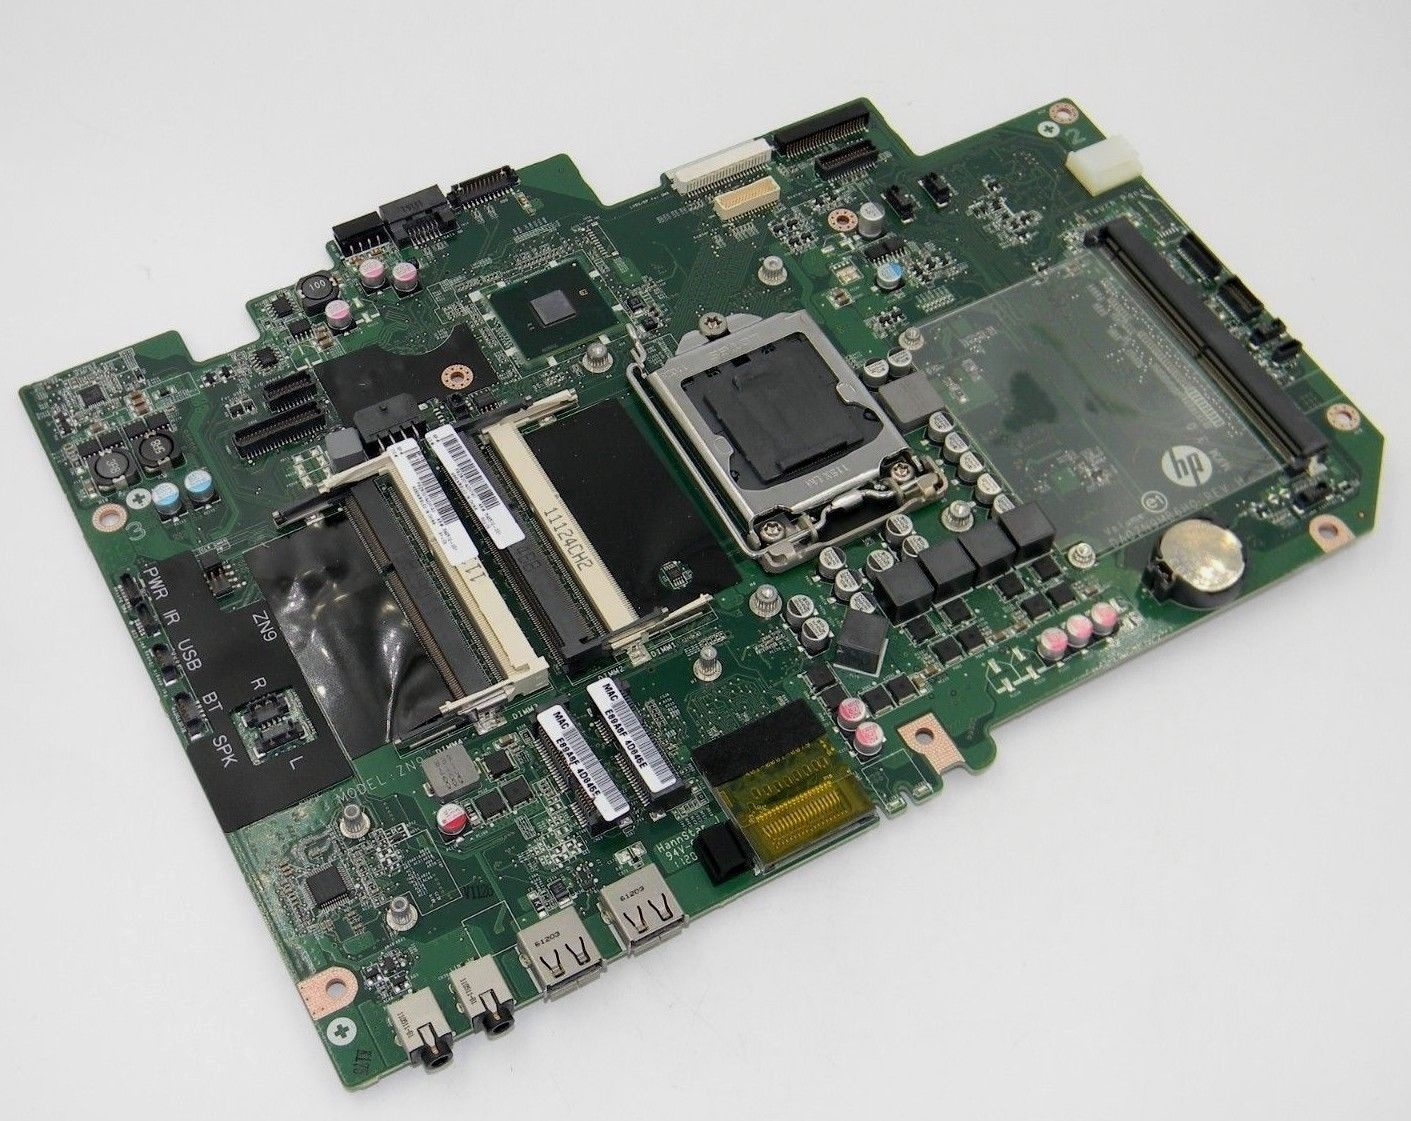 Details about HP 648512-001 DA0ZN9MB6H0 Motherboard for Touch Smart 610  SERIES PC